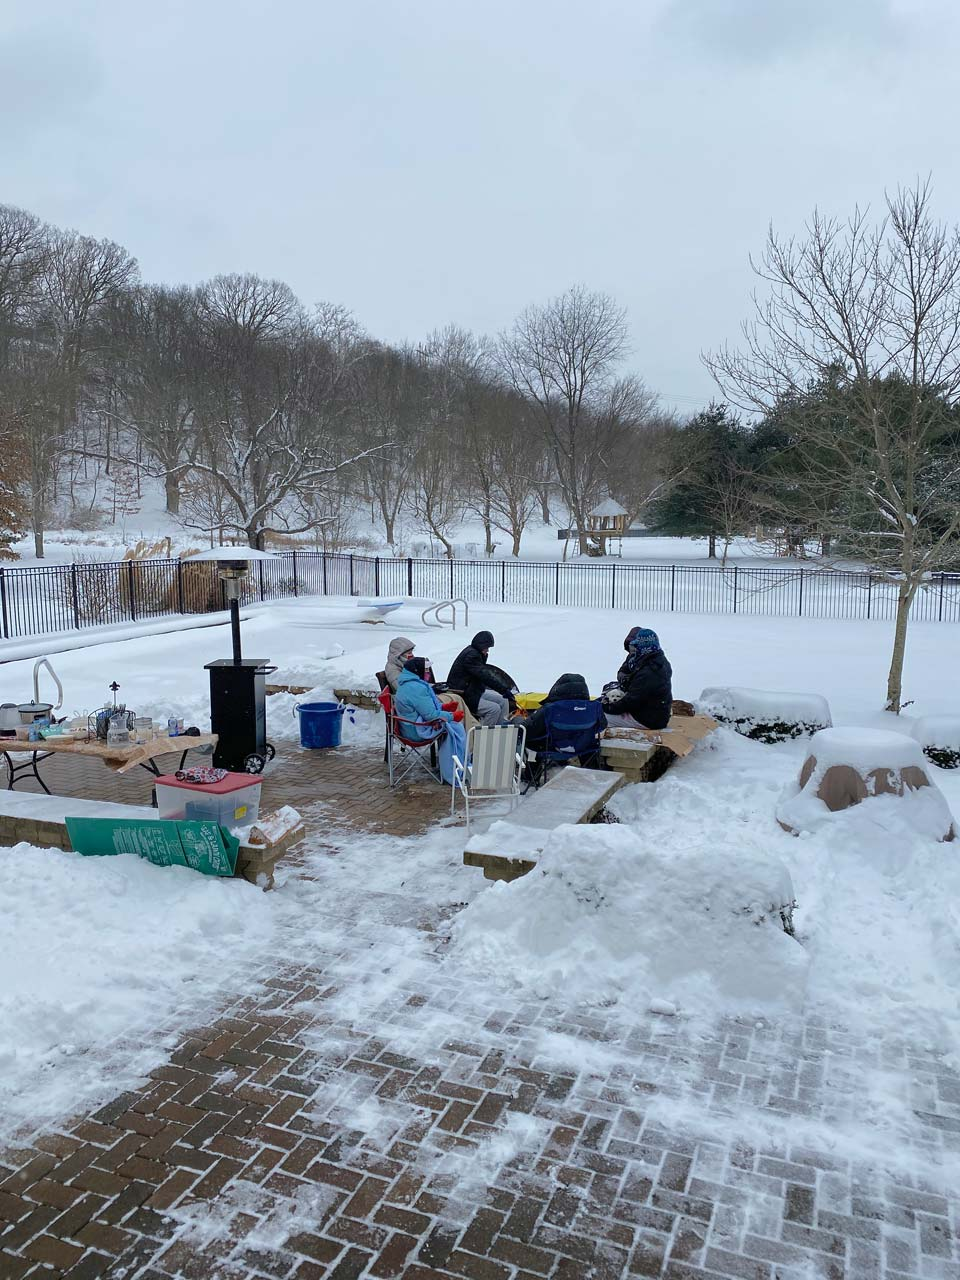 Jim and Linda Neuenschwander celebrated Christmas 2020 in 3° F temperature for 3 hours using a portable propane heater and a wood-burning fire apparatus in central Ohio. We safely ate chill and had hot chocolate and marshmallows for dessert.